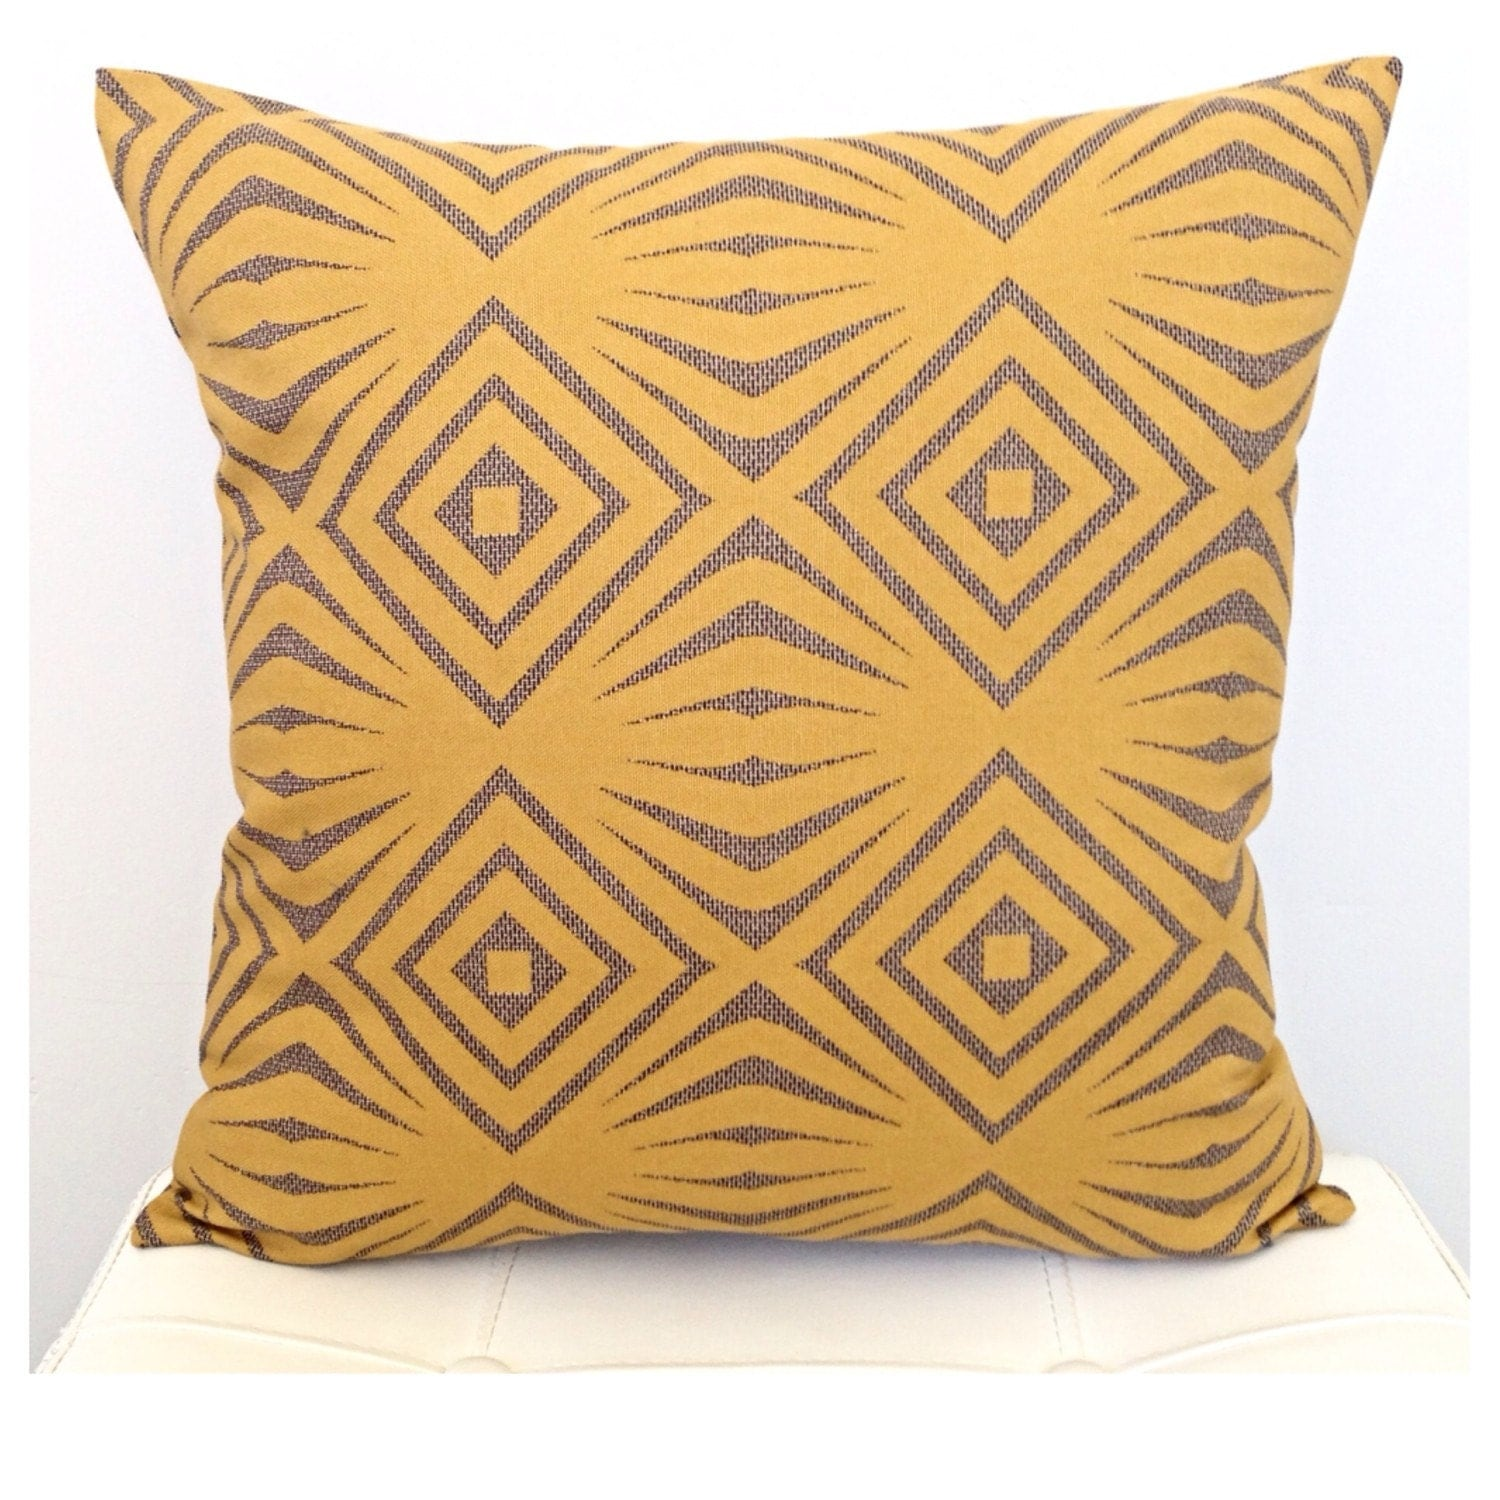 Mustard Throw Pillow Covers : Mustard Yellow Decorative Pillow Cover Yellow and by TwigandIris